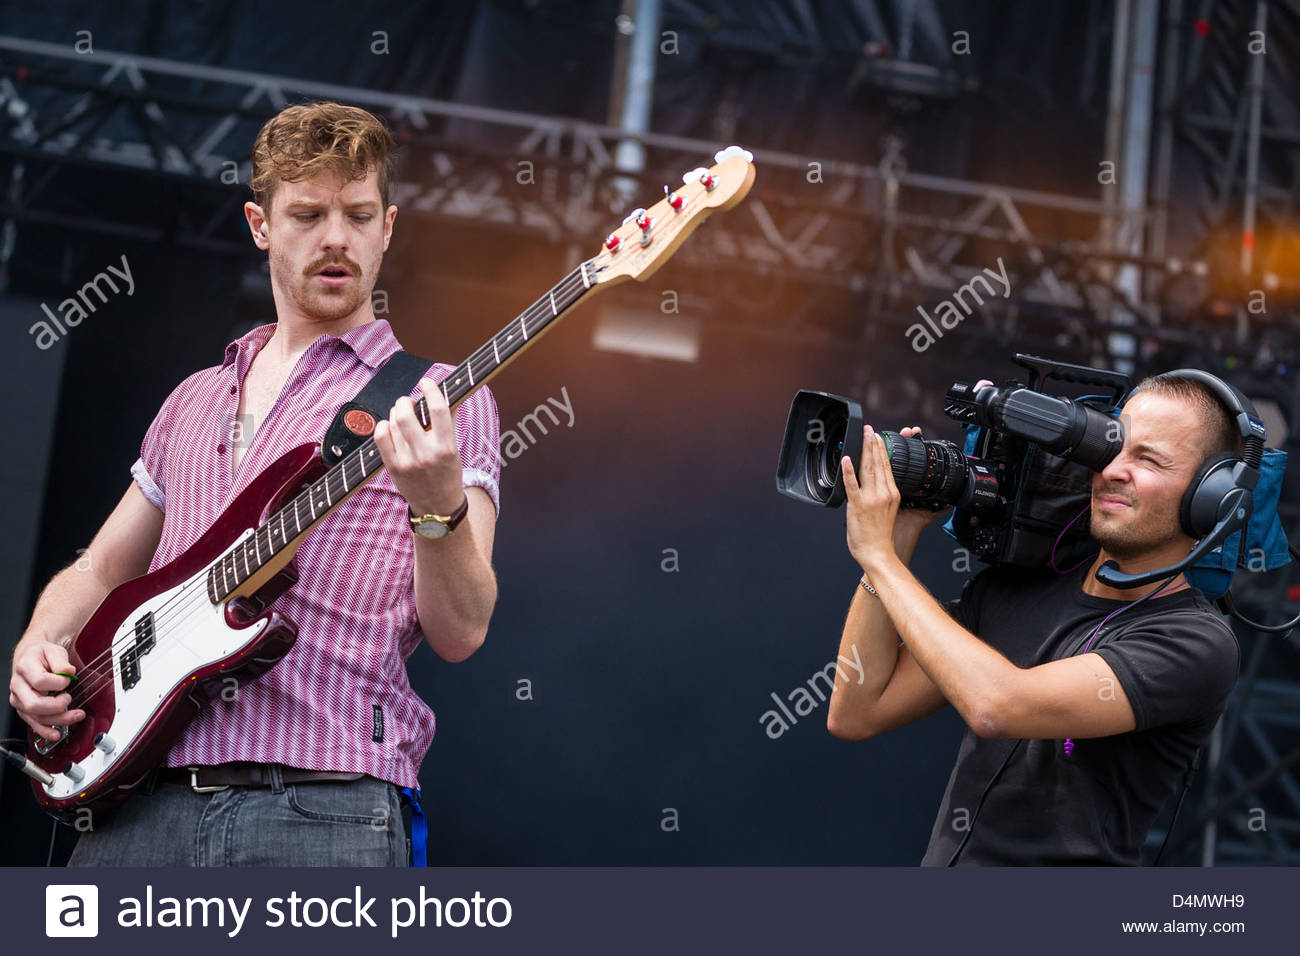 Bass guitar player performing live - Stock Image